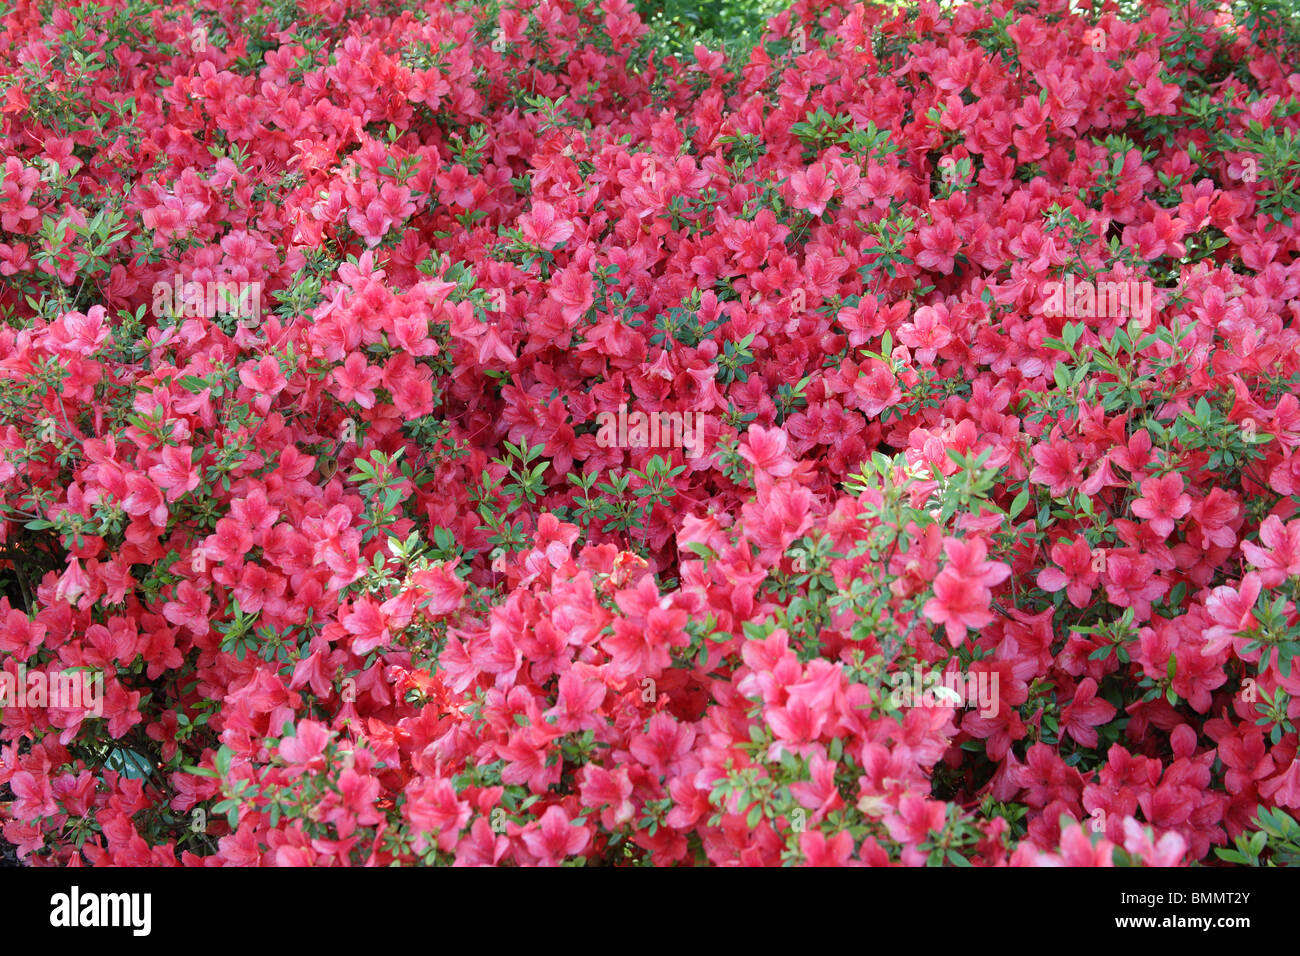 RHODODENDRON FLORIDA PLANTS IN FLOWER Stock Photo